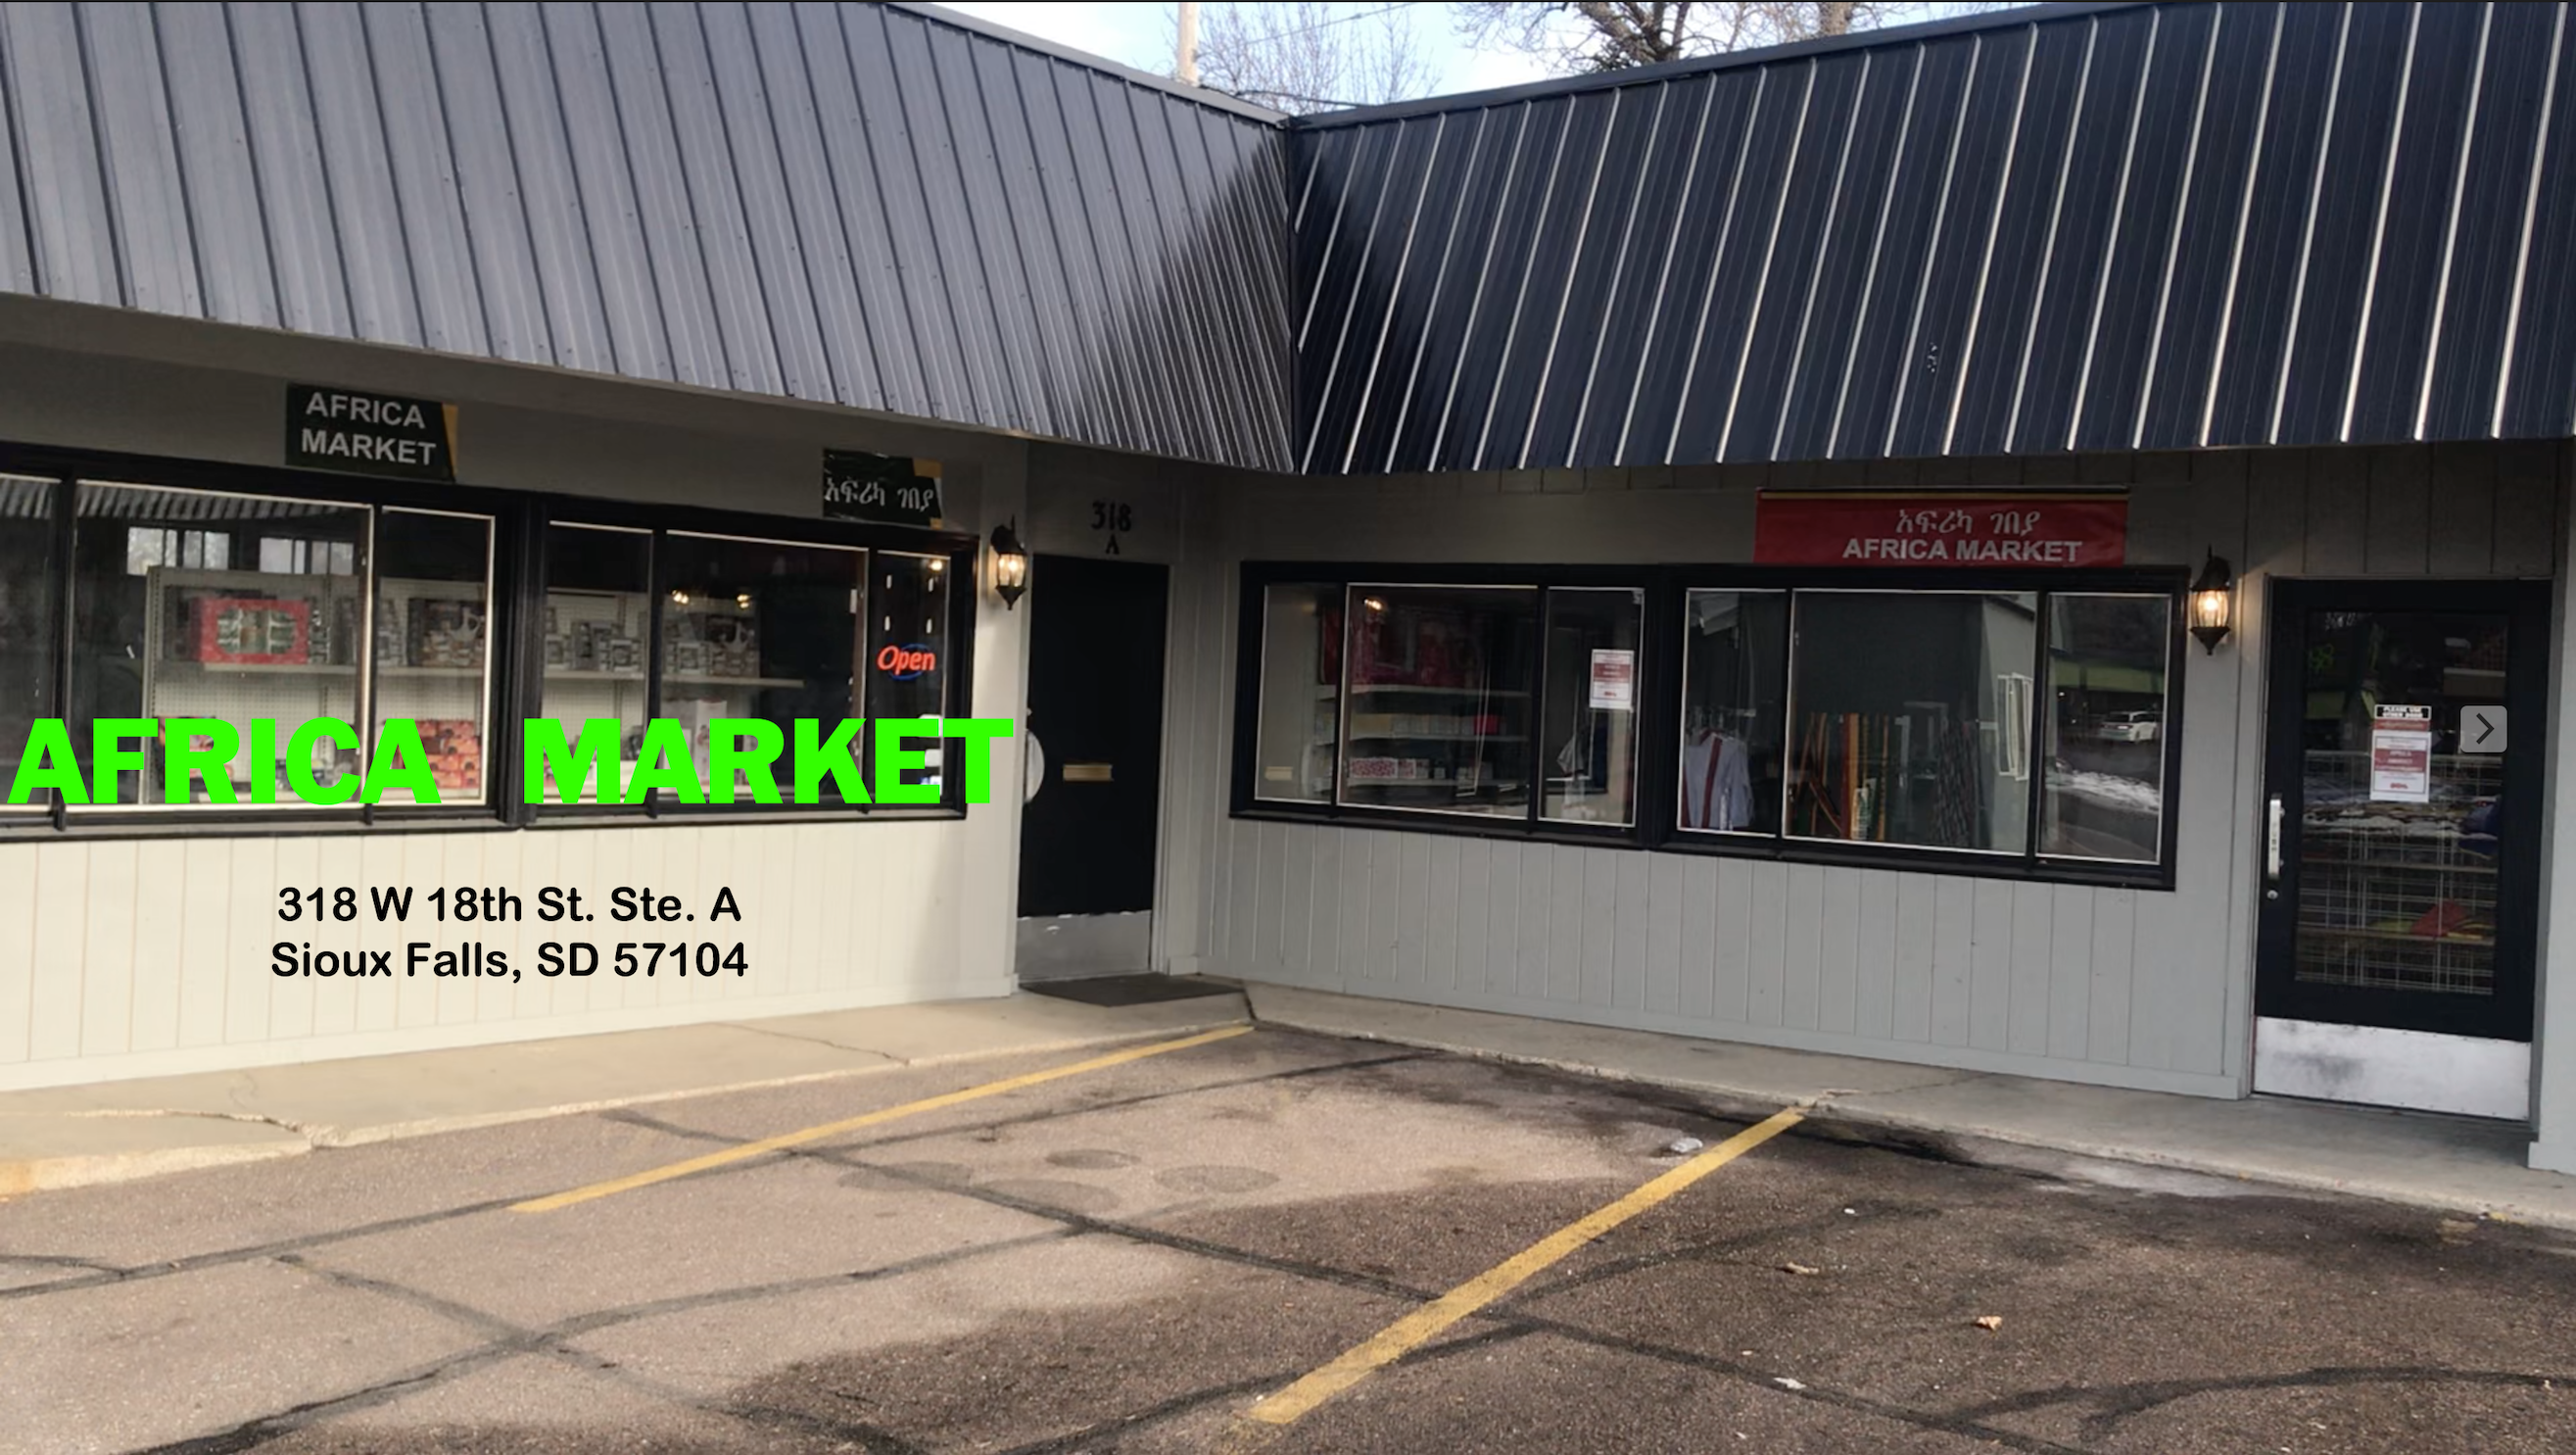 AFRICA MARKET አፍሪካ ገበያ 318 W 18TH ST.  SIOUX FALLS, SD 57104-4895